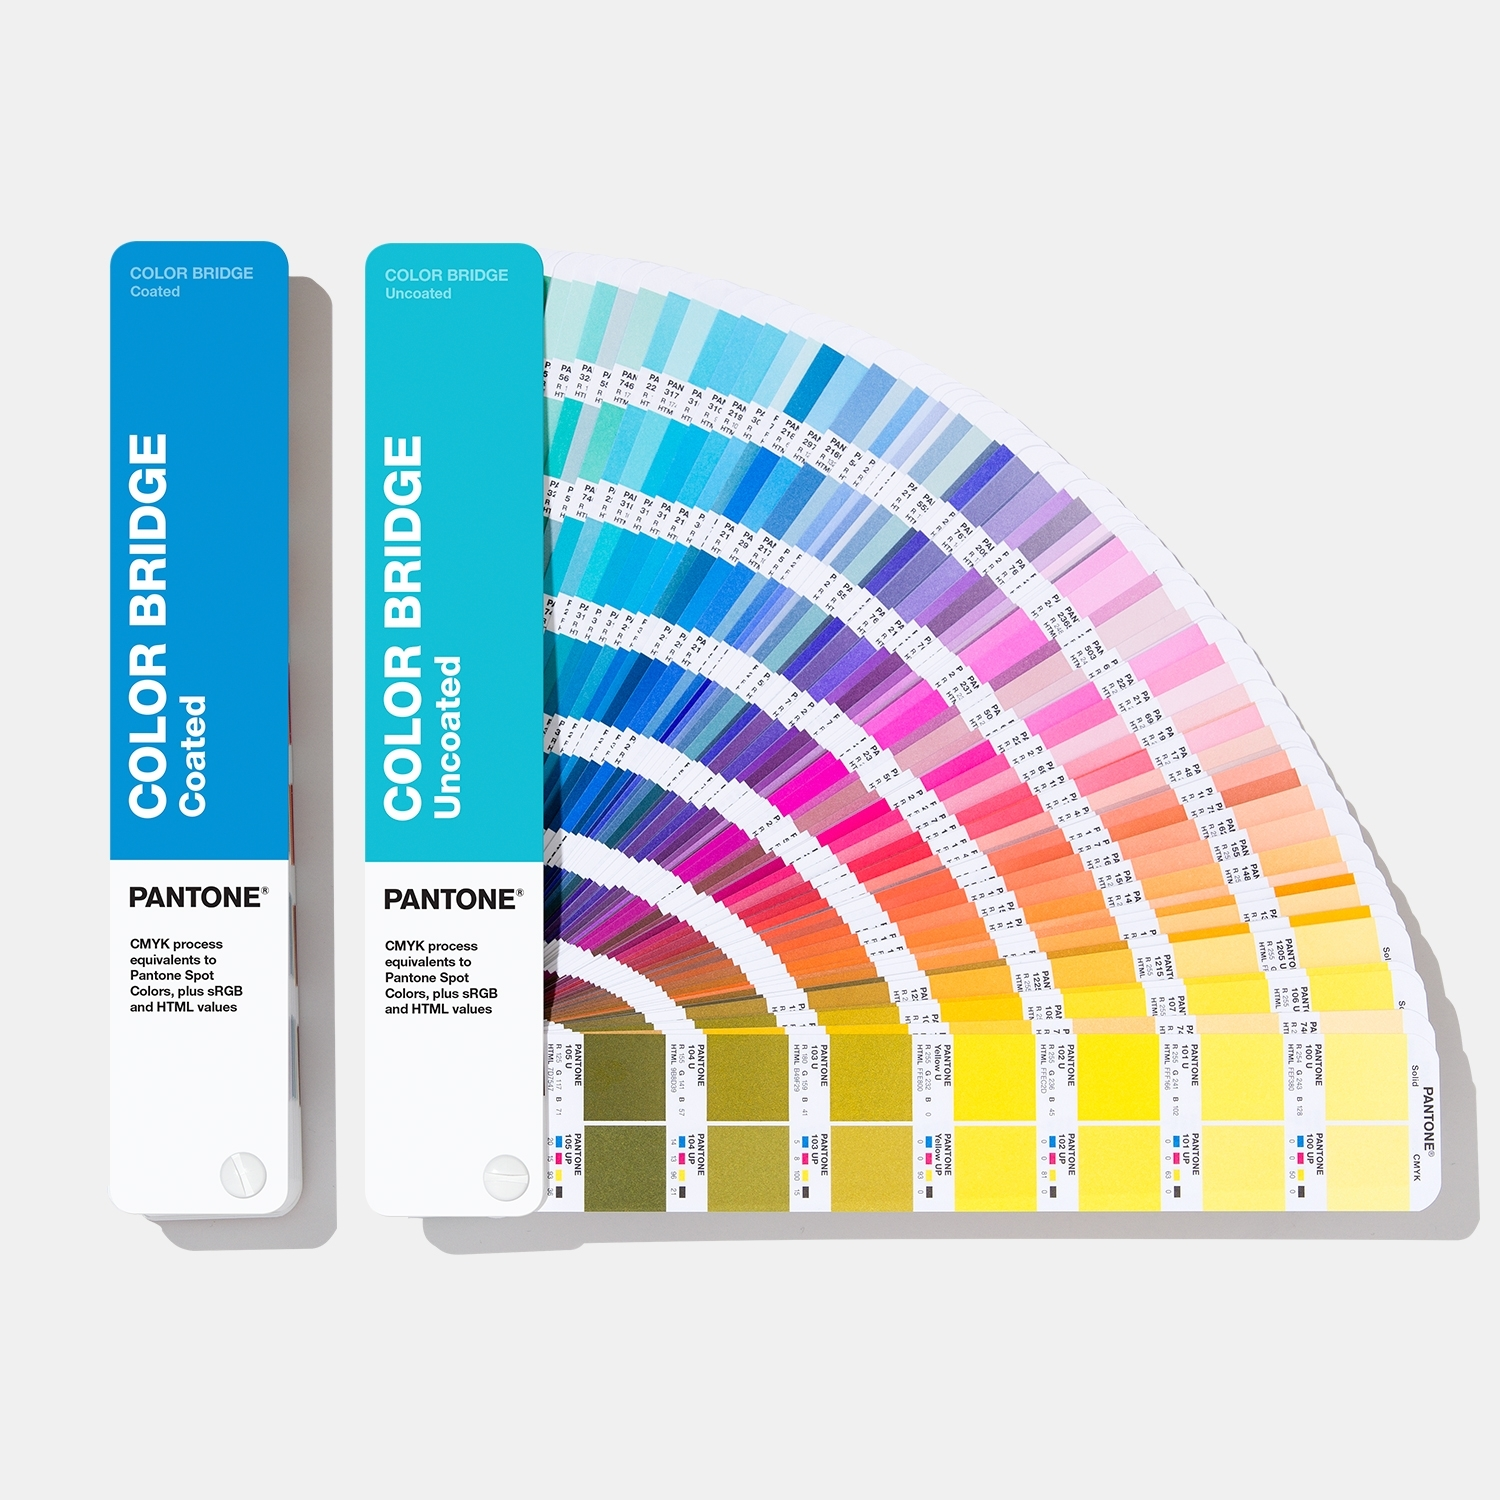 Pantone Color Bridge Uncoated - View 3